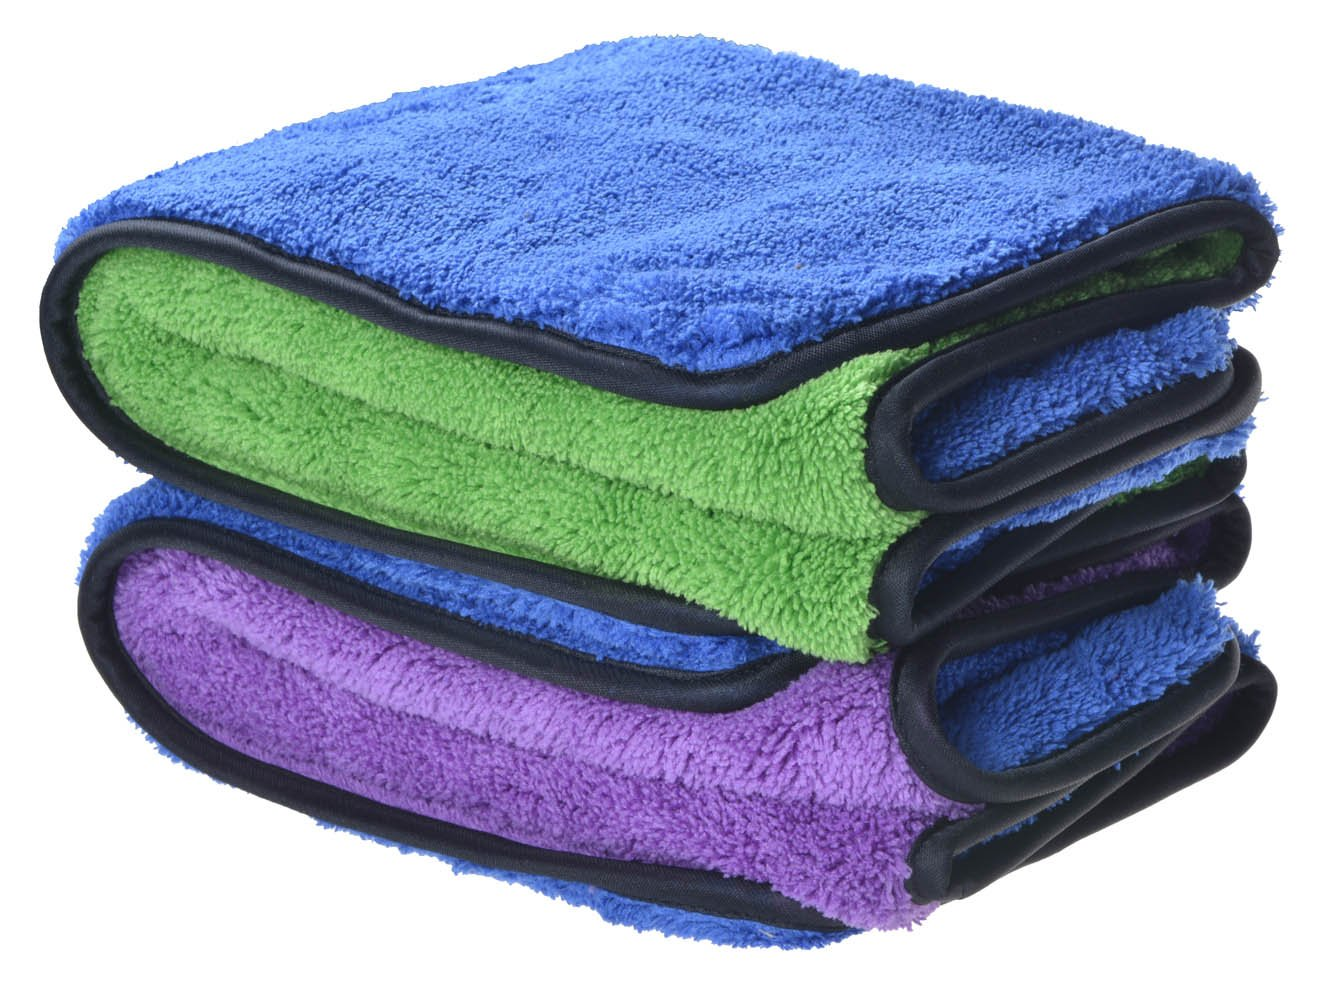 Sinland Ultra Thick Plush Microfiber Car Cleaning Towels Buffing Cloths Drying Towel 16Inch x 24Inch 2 Pack (blue/purple+blue/green)) product image